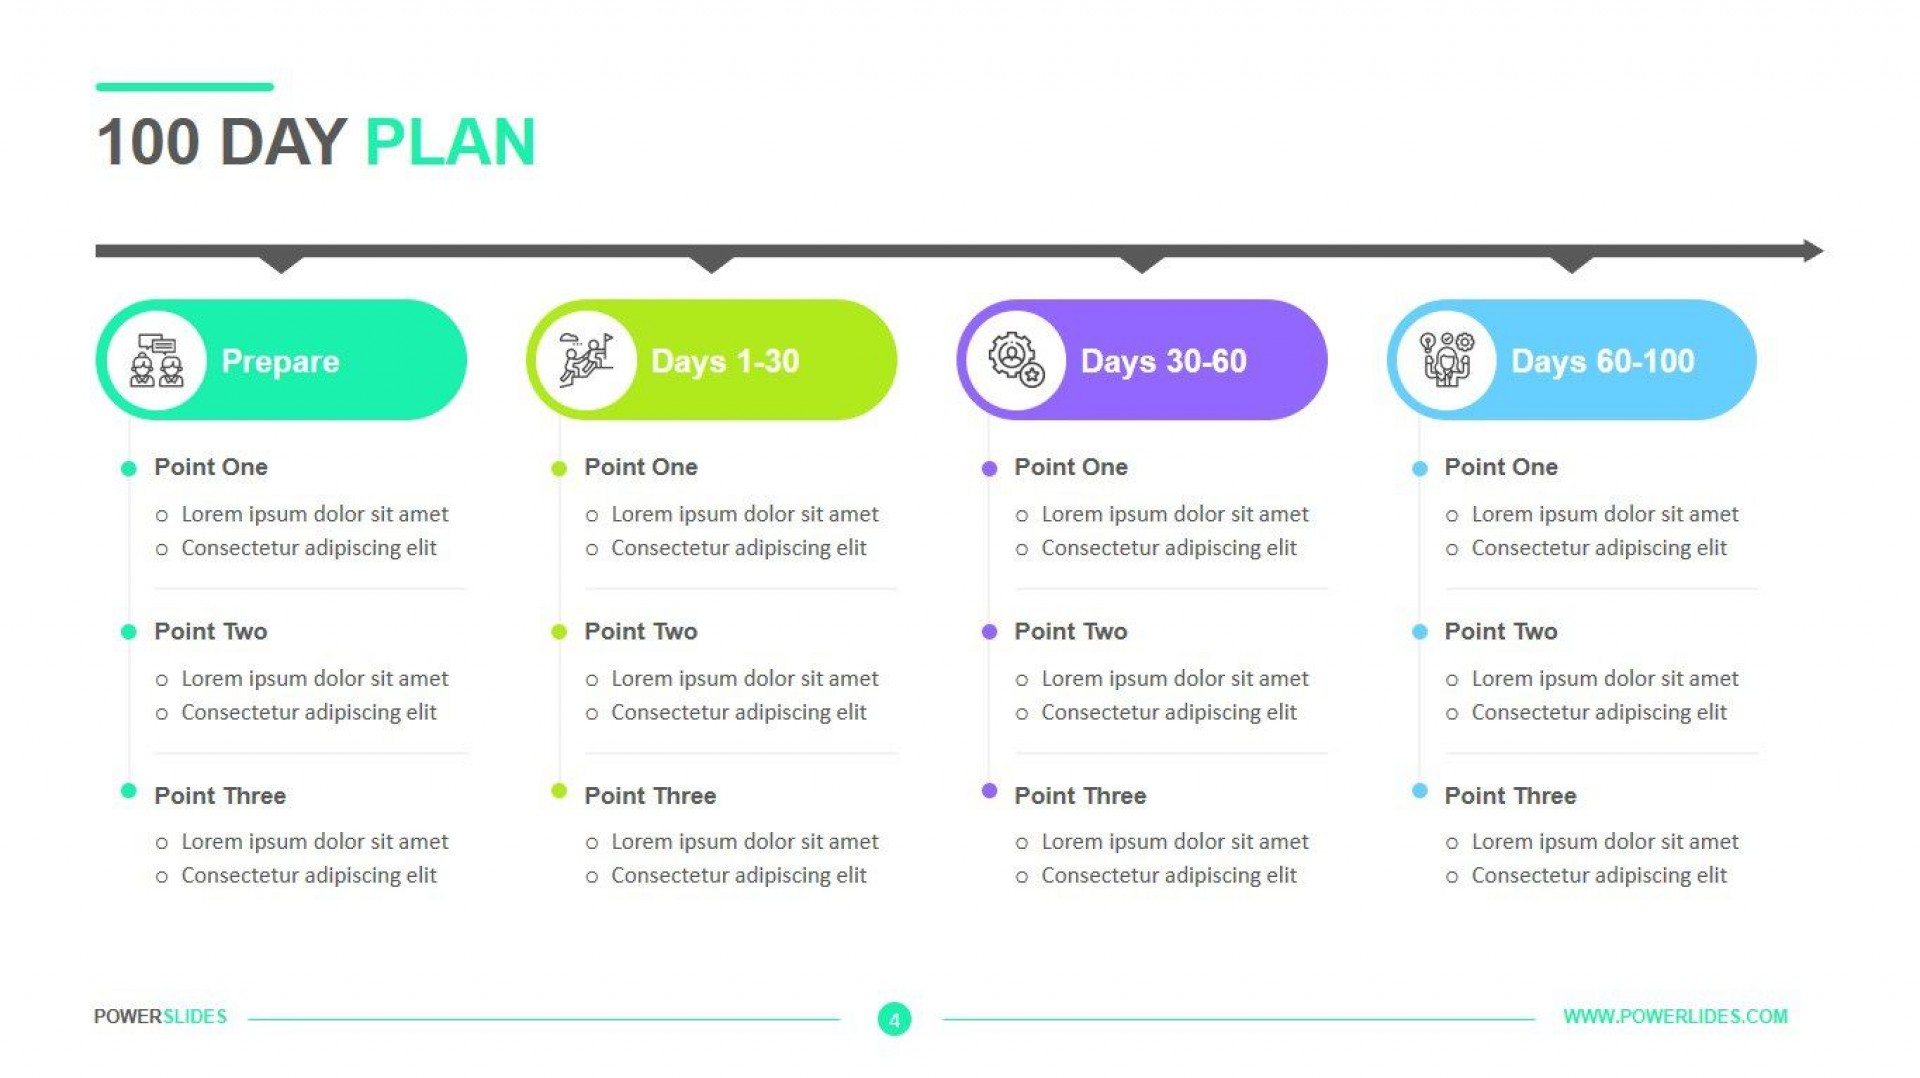 005 Exceptional 100 Day Plan Template Picture  For Interview Word Excel Free1920